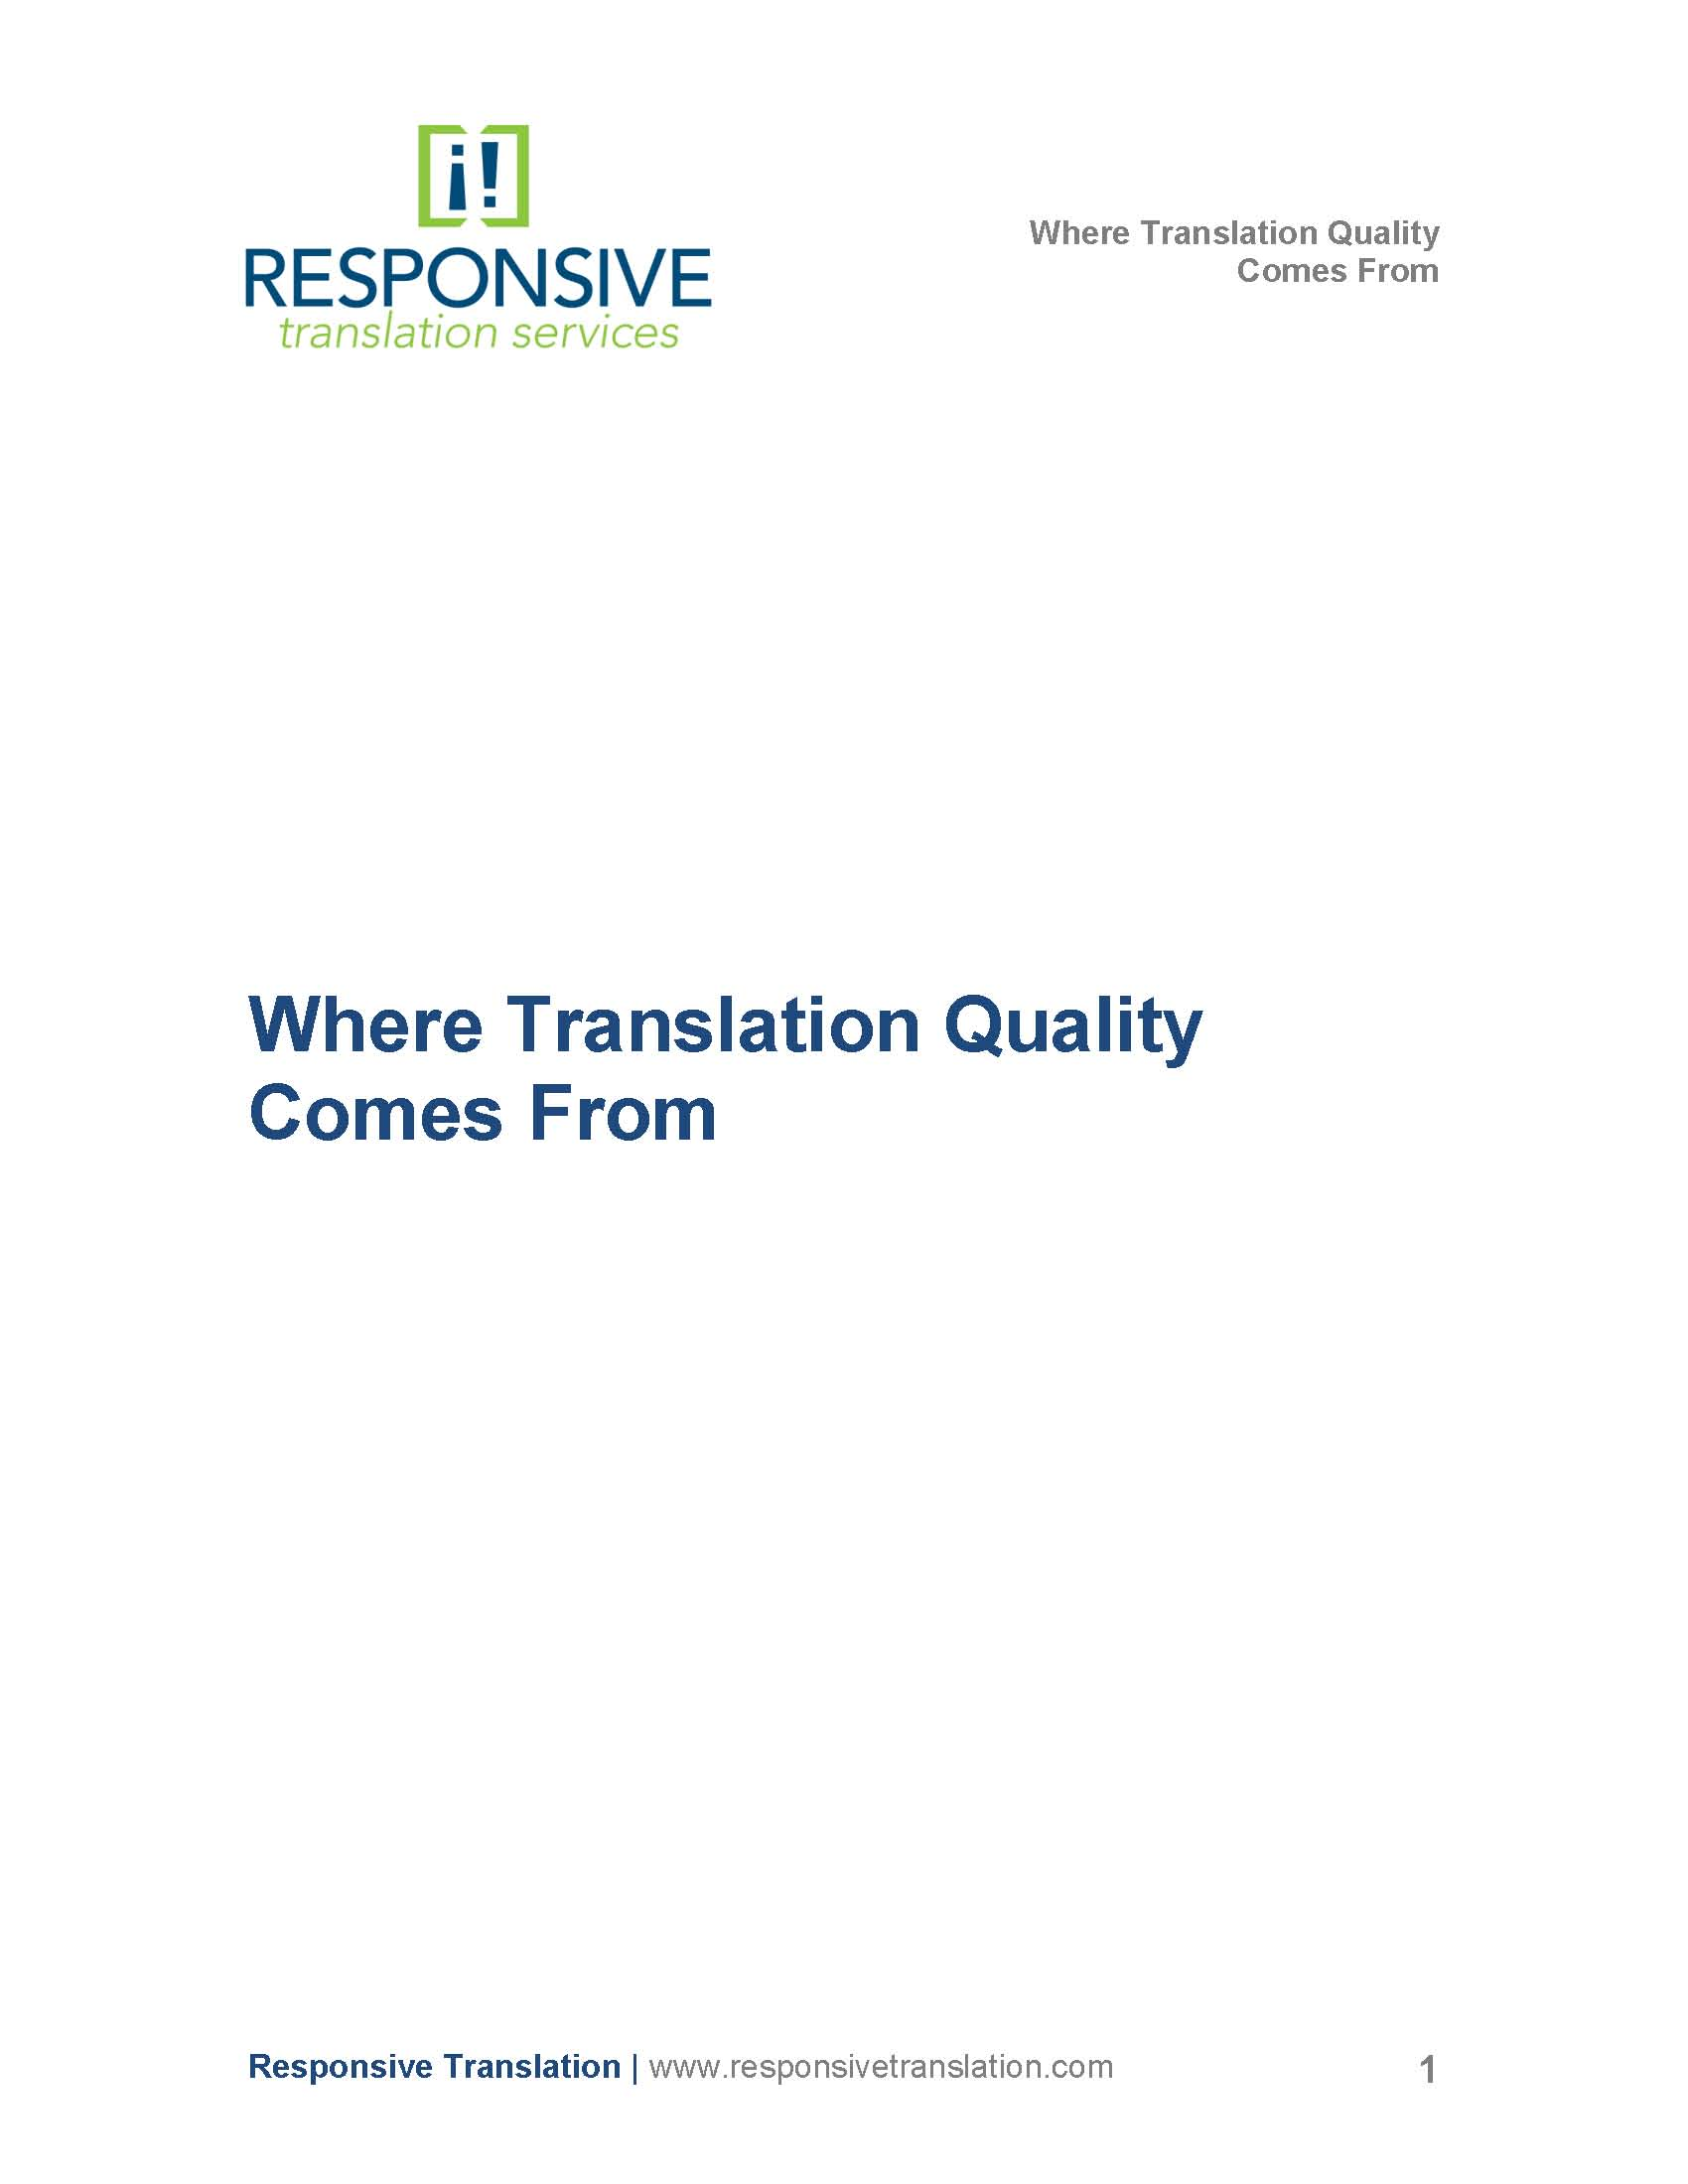 Where Translation Quality Comes From image_Page_1